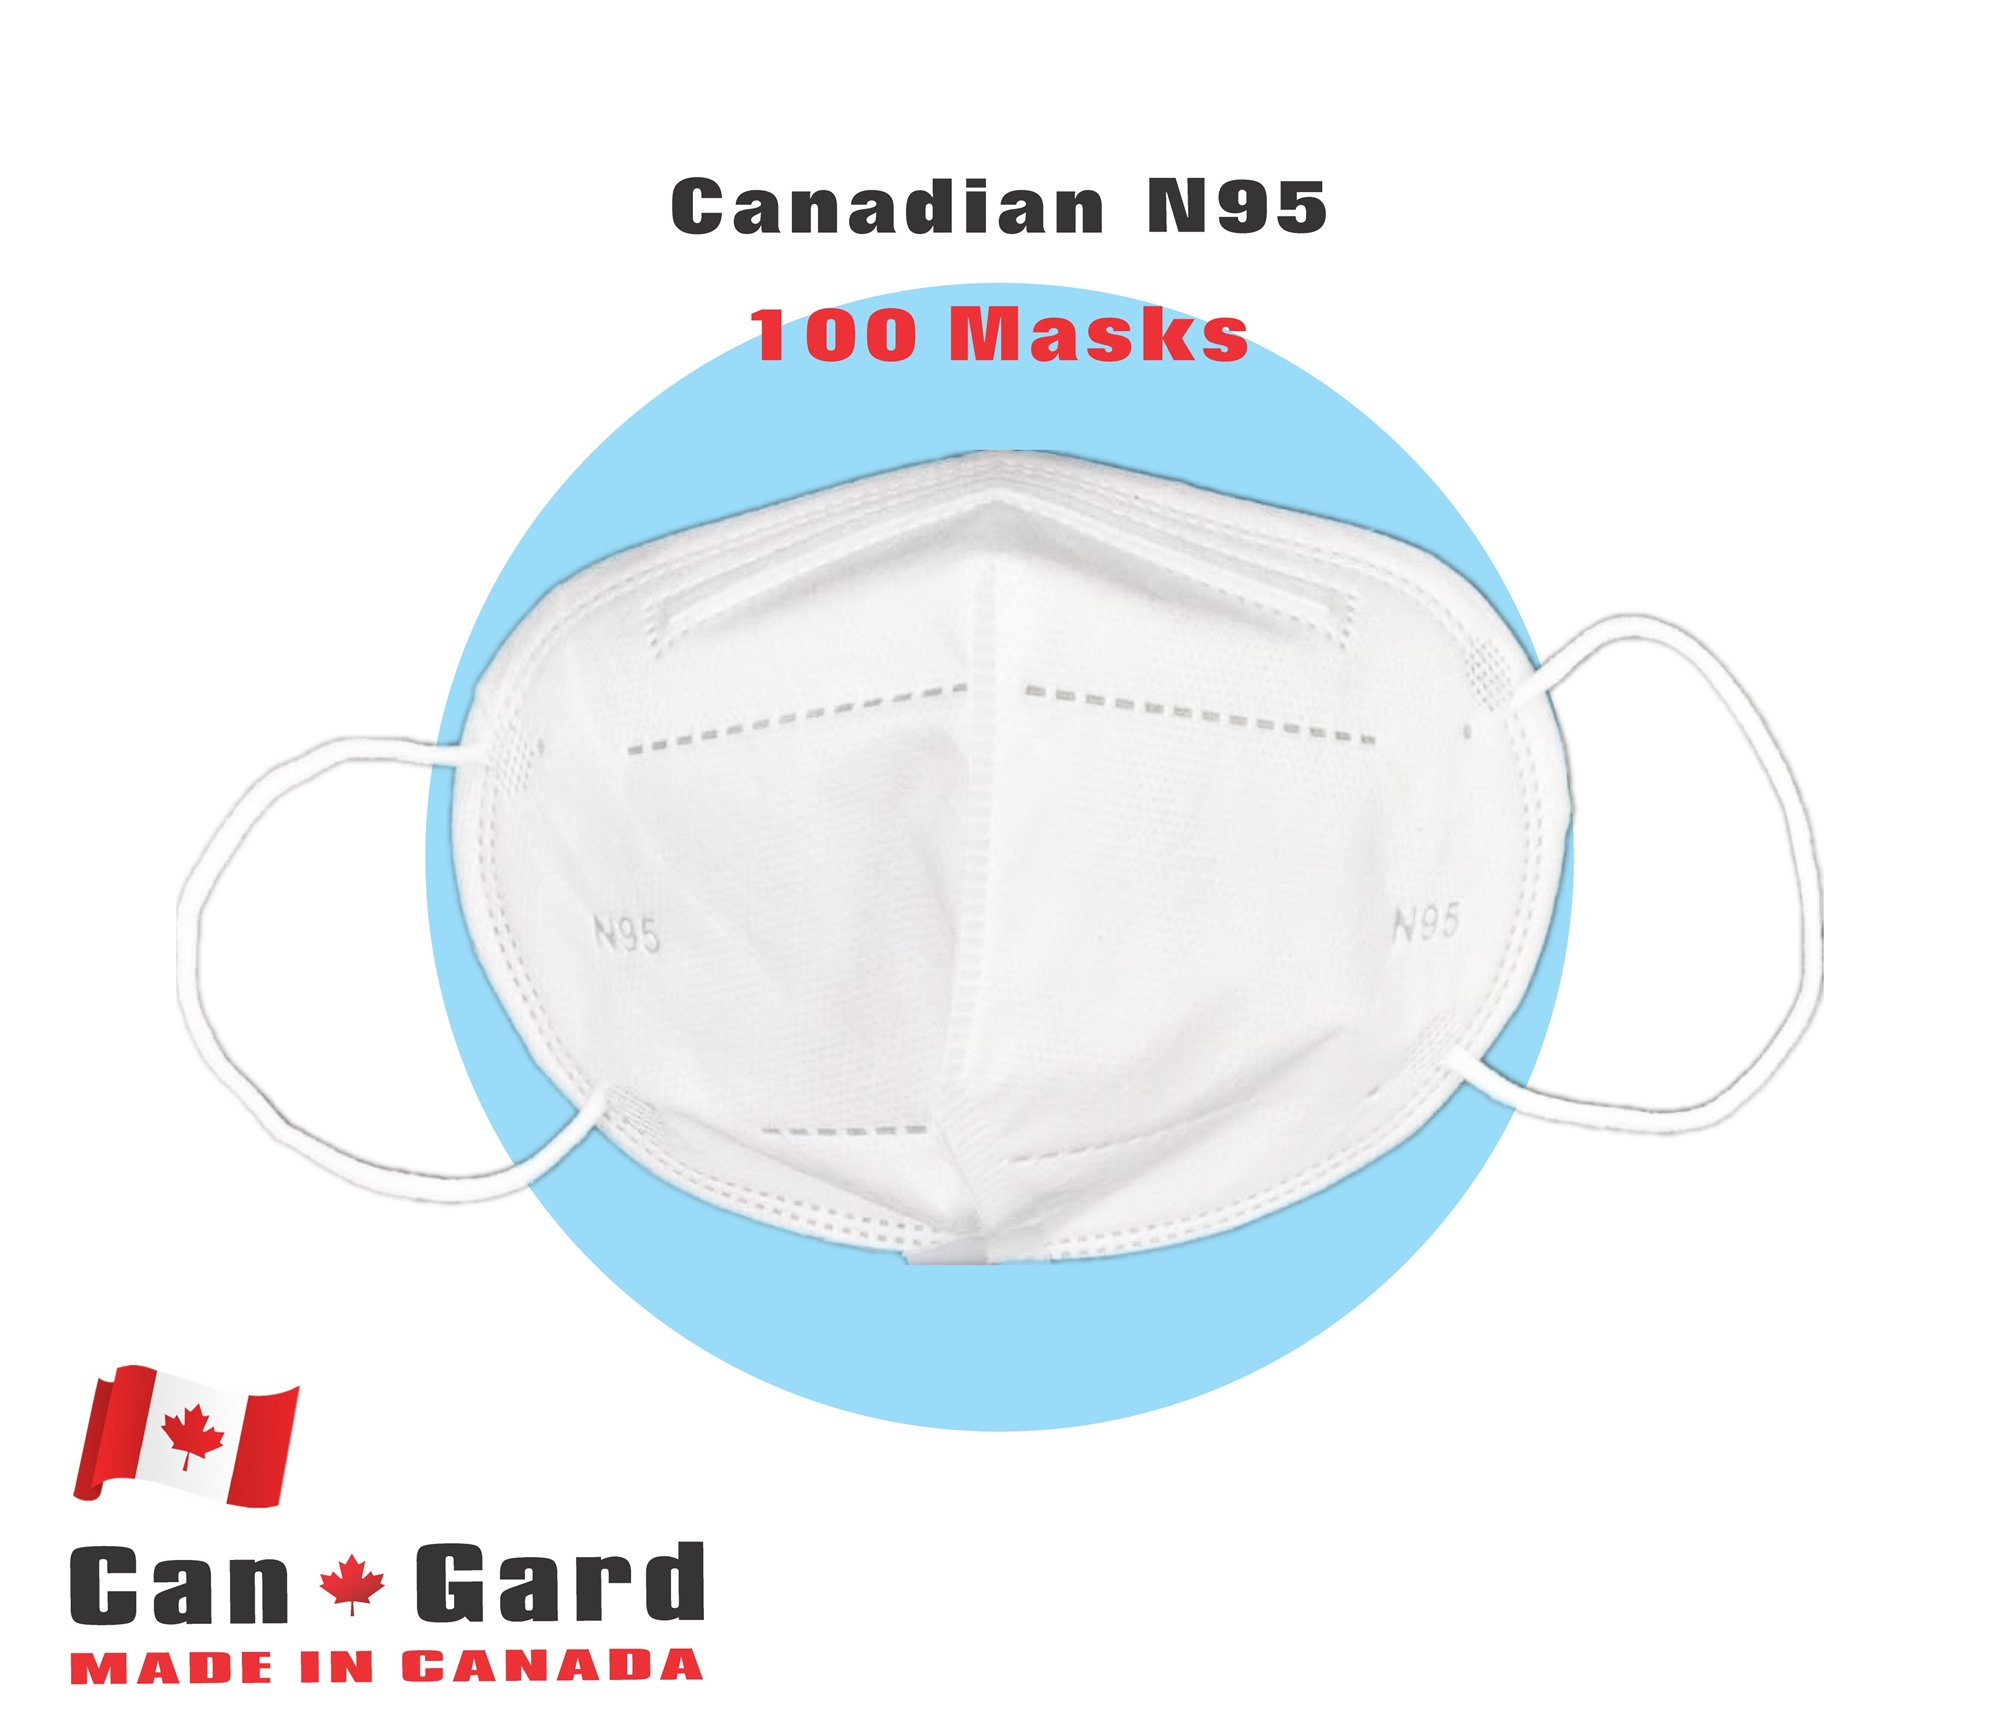 CanGard Care - Canadian N95 100 Masks